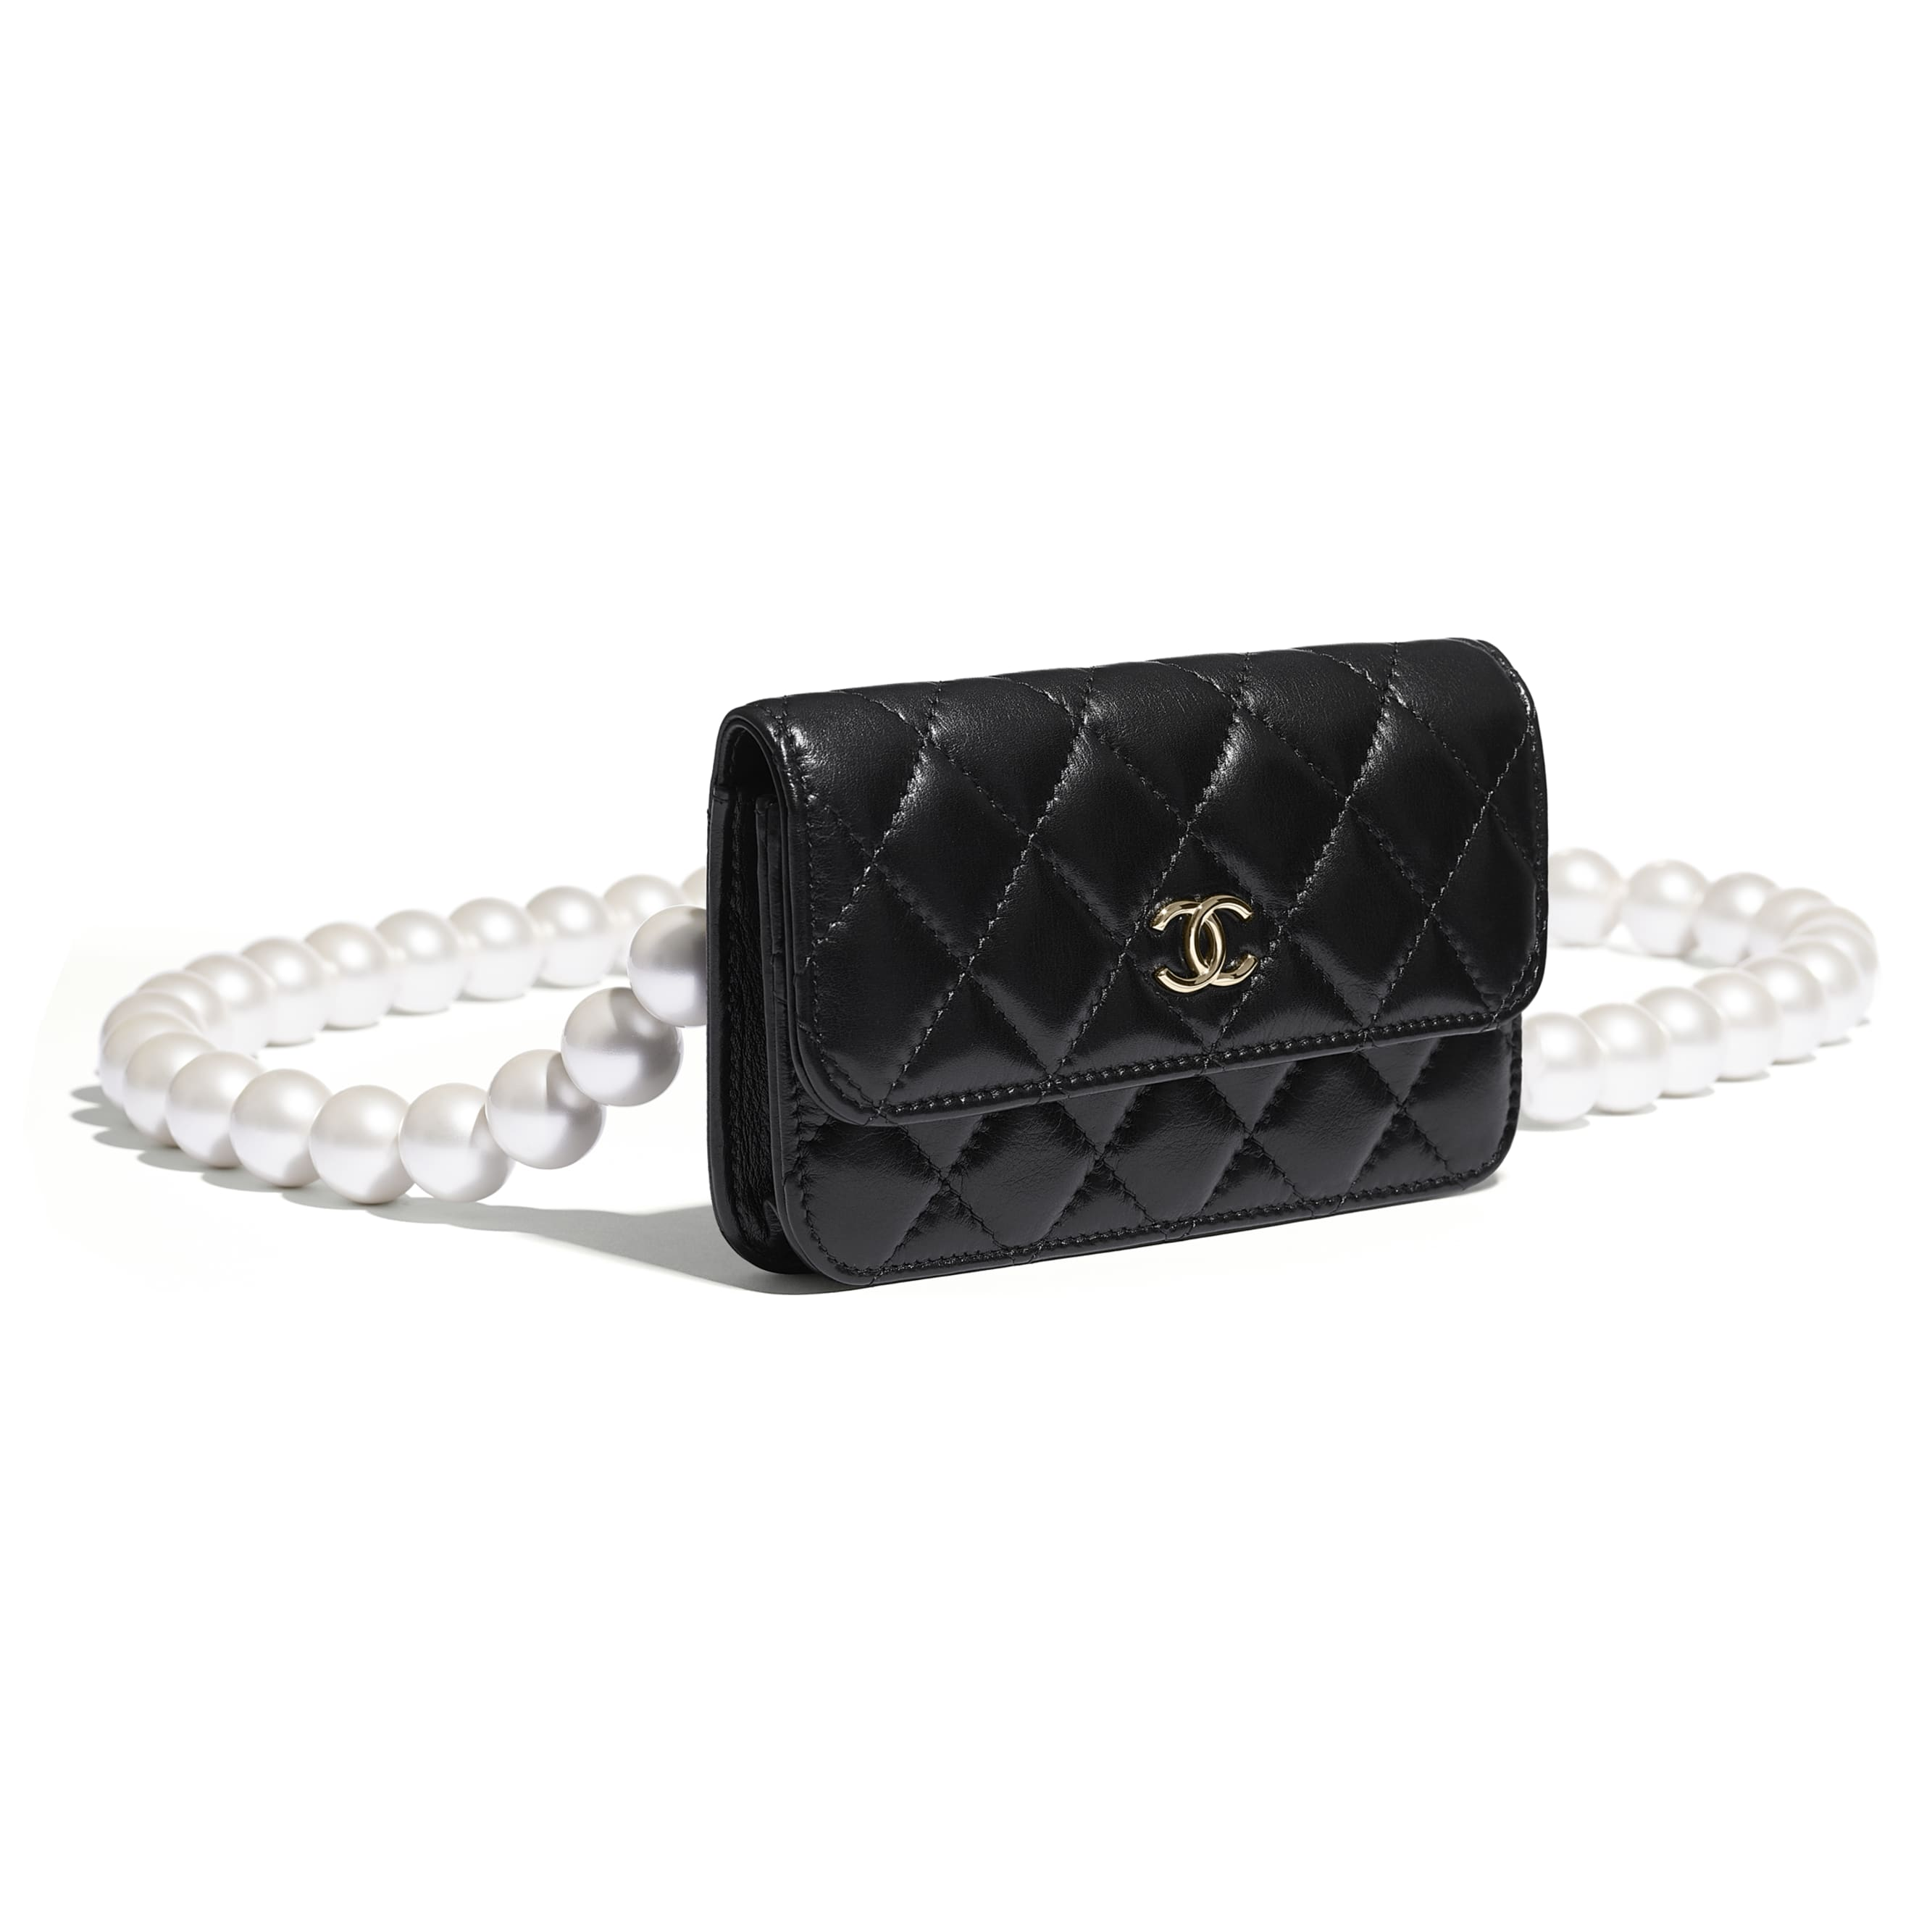 Clutch With Chain - Black - Calfskin, Imitation Pearls & Gold-Tone Metal - CHANEL - Other view - see standard sized version